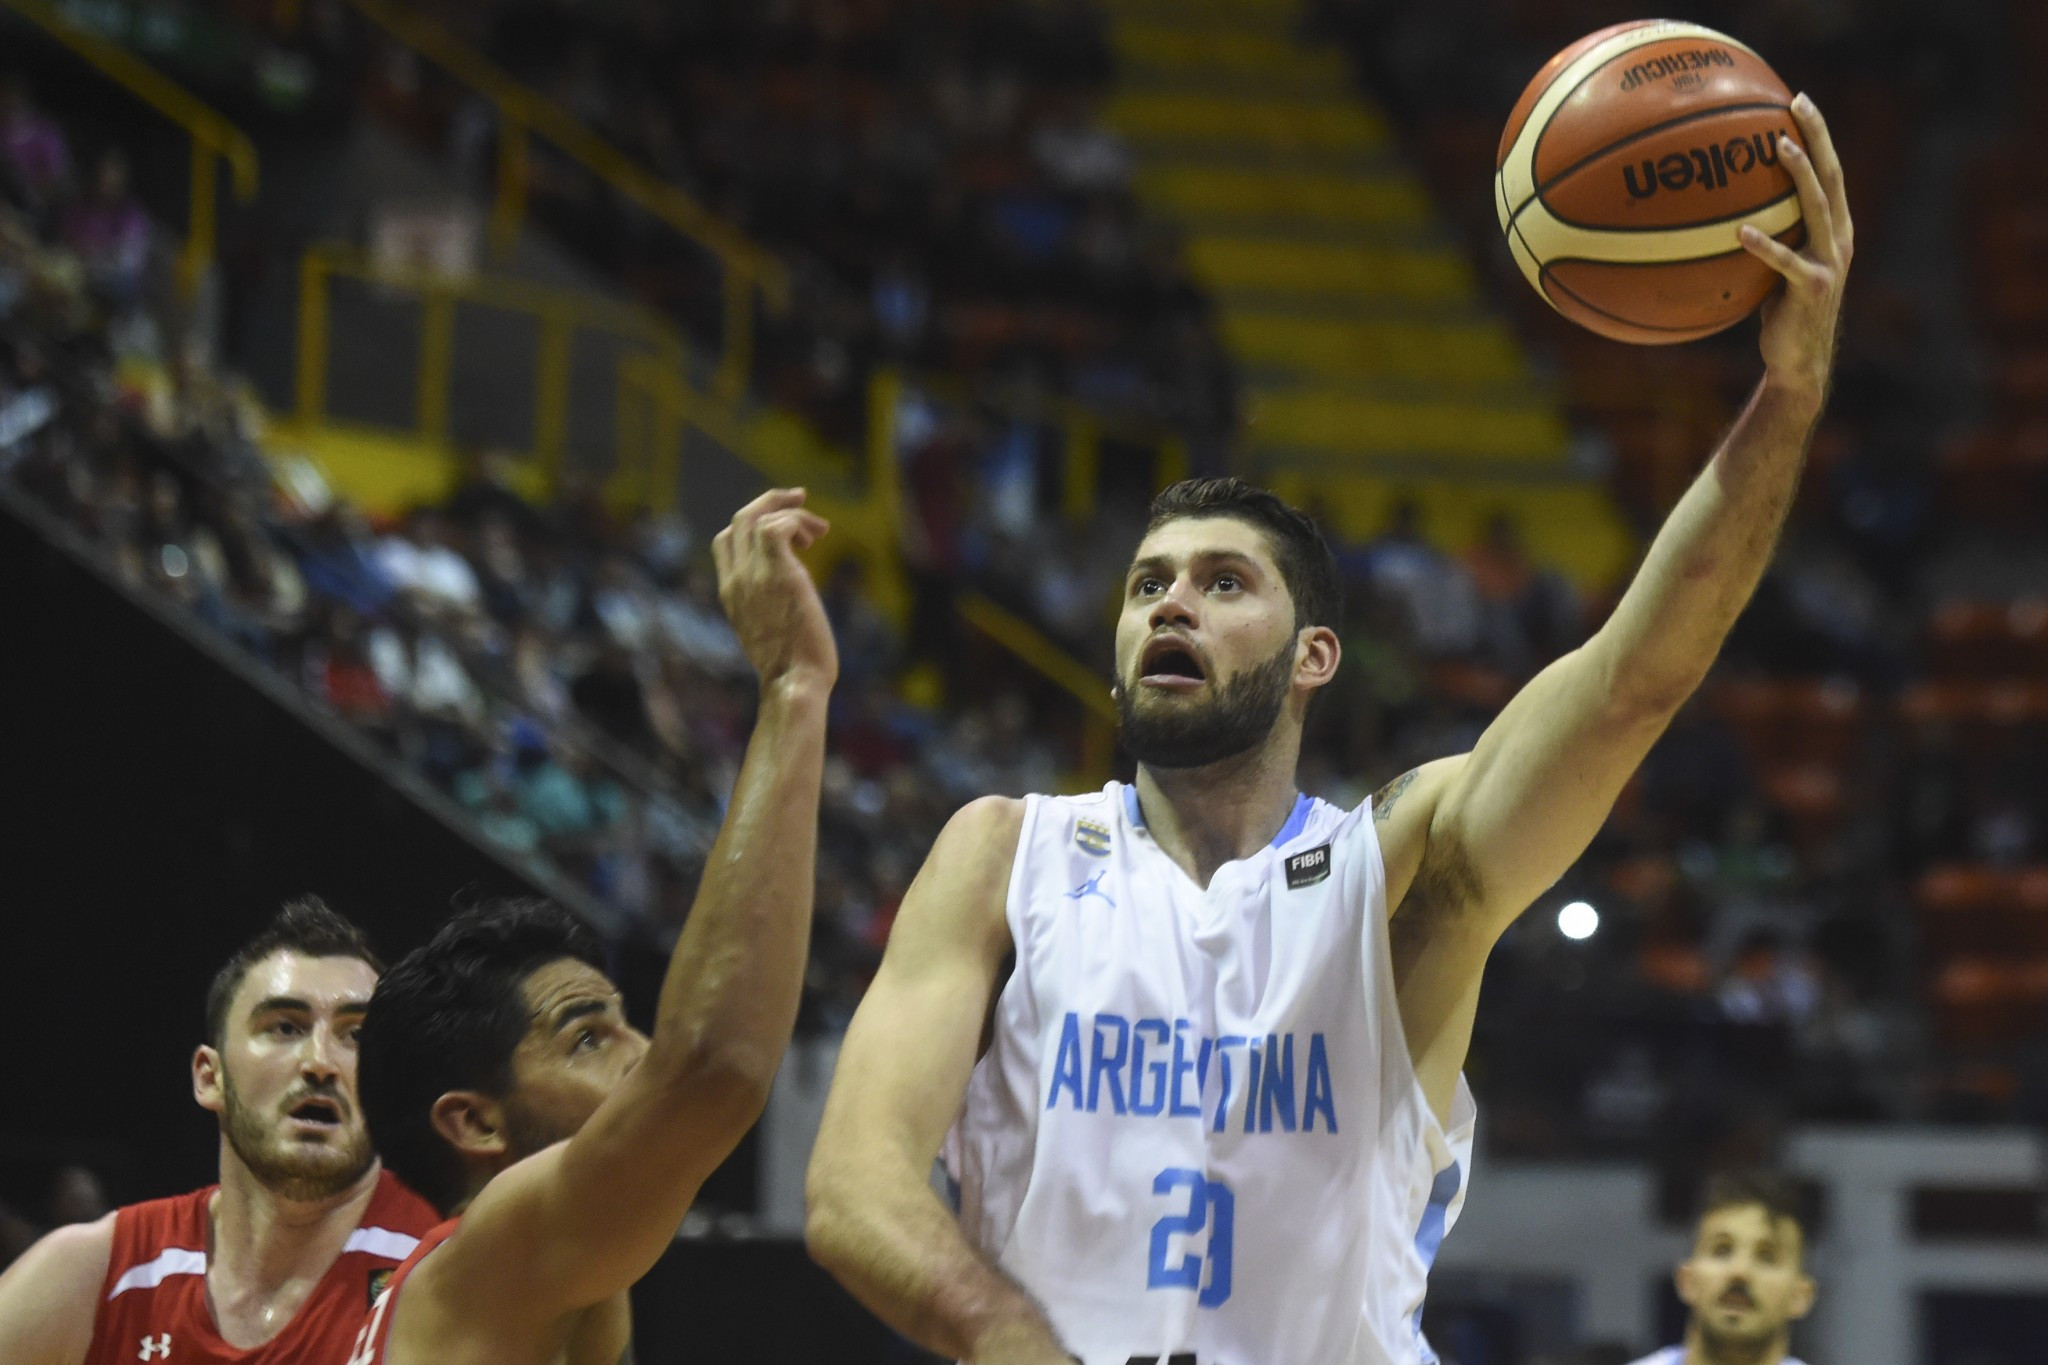 Argentina to meet United States in FIBA AmeriCup final